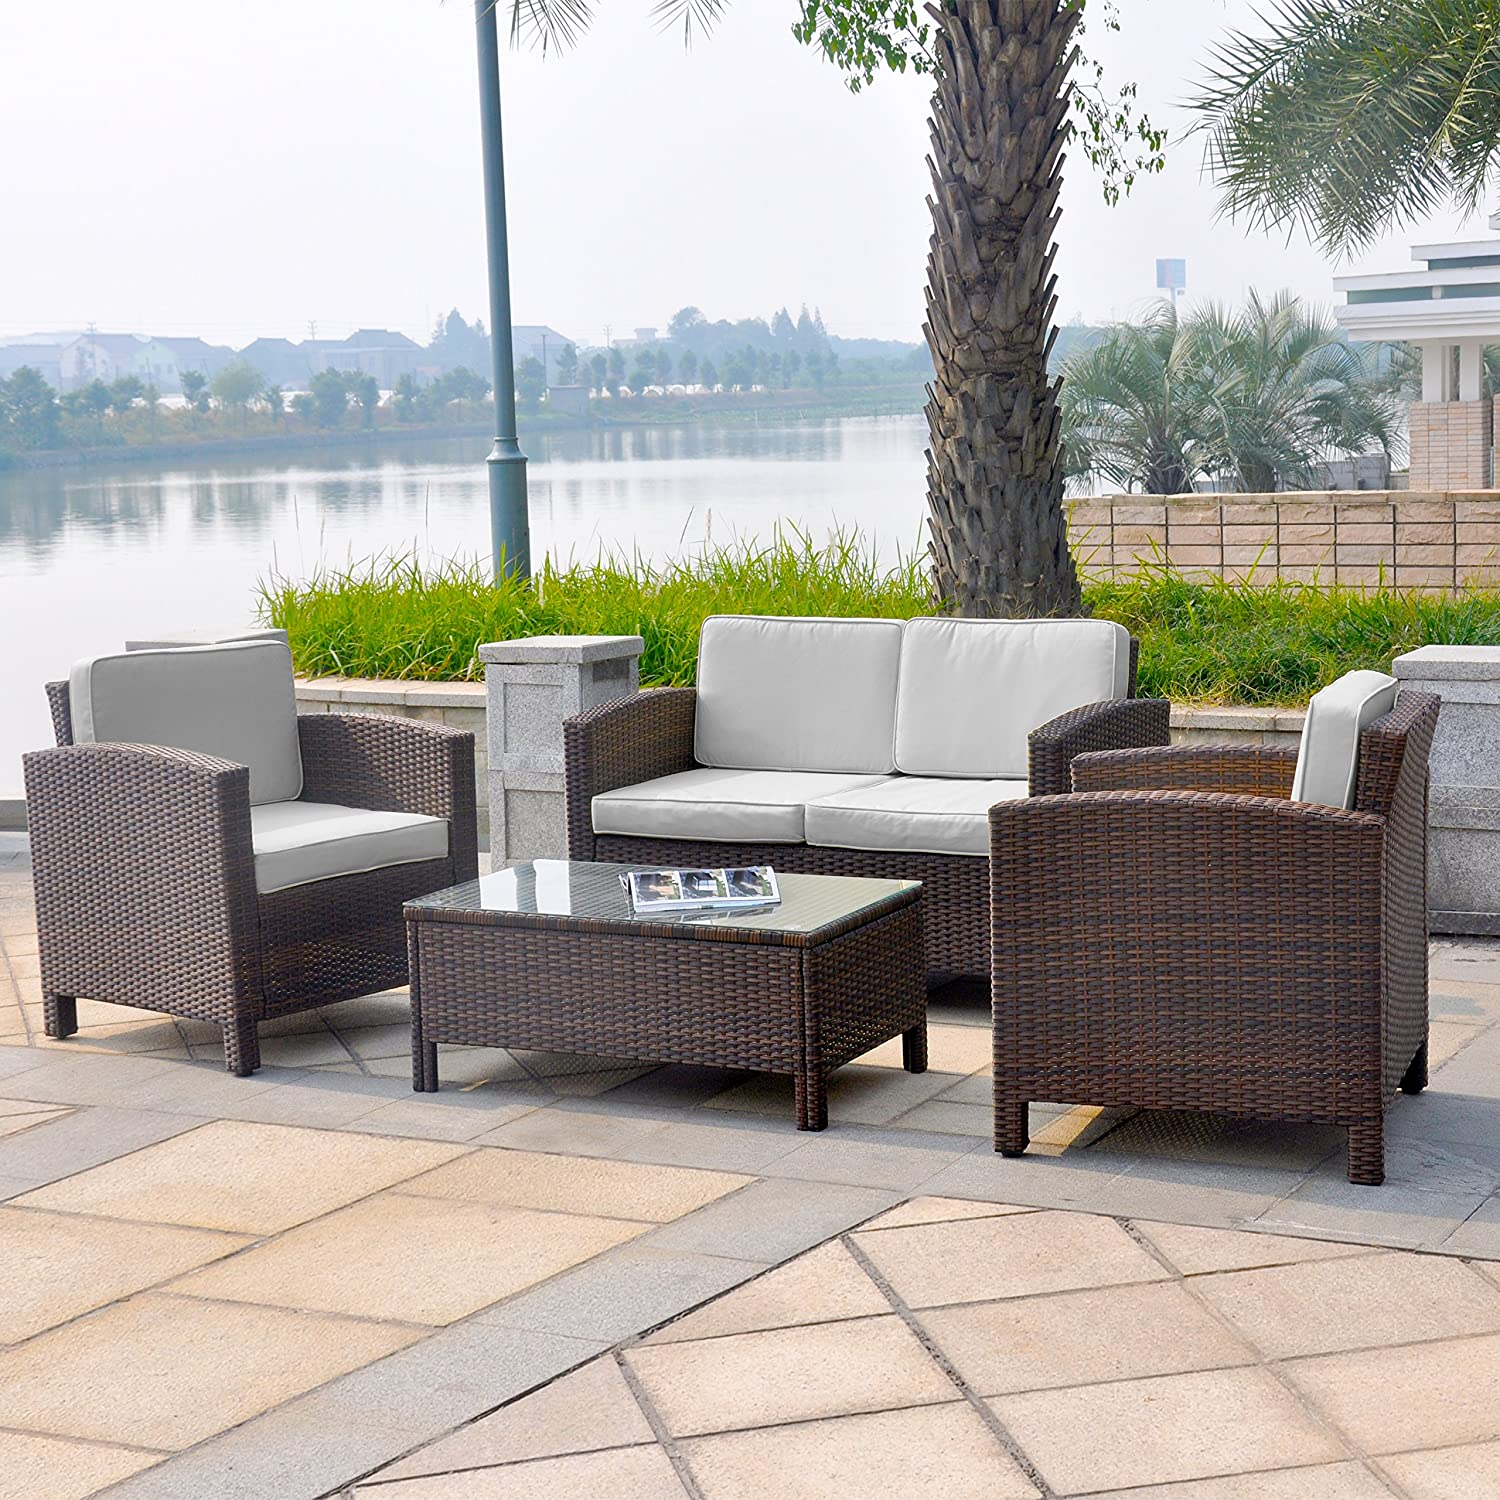 Amazon.de: 13tlg. Deluxe Lounge Set Gruppe Garnitur Gartenmöbel